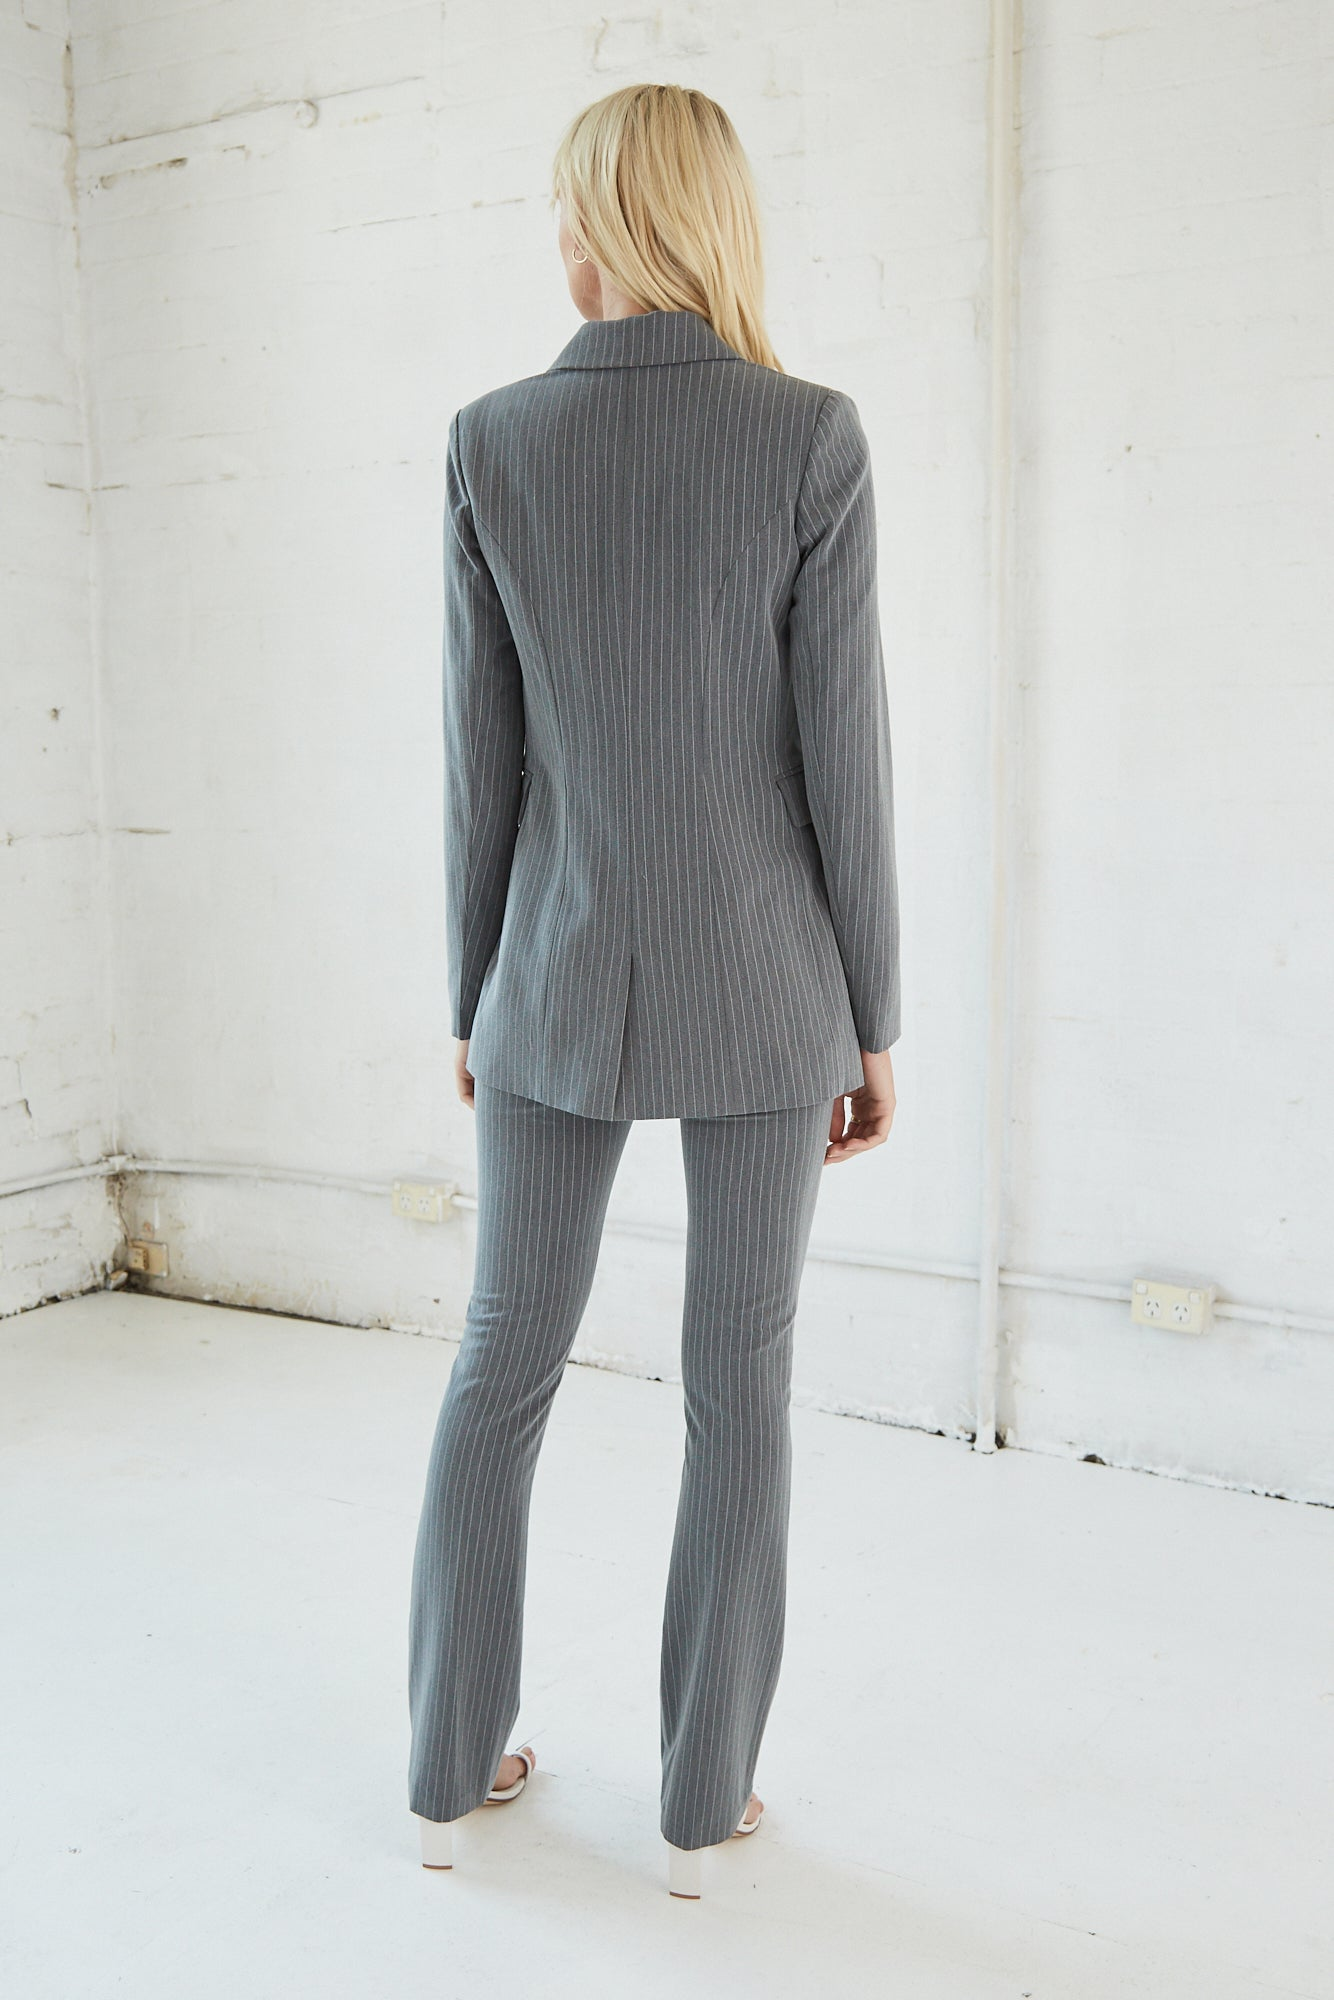 FORMALITIES SUIT JACKET | GREY PINSTRIPE